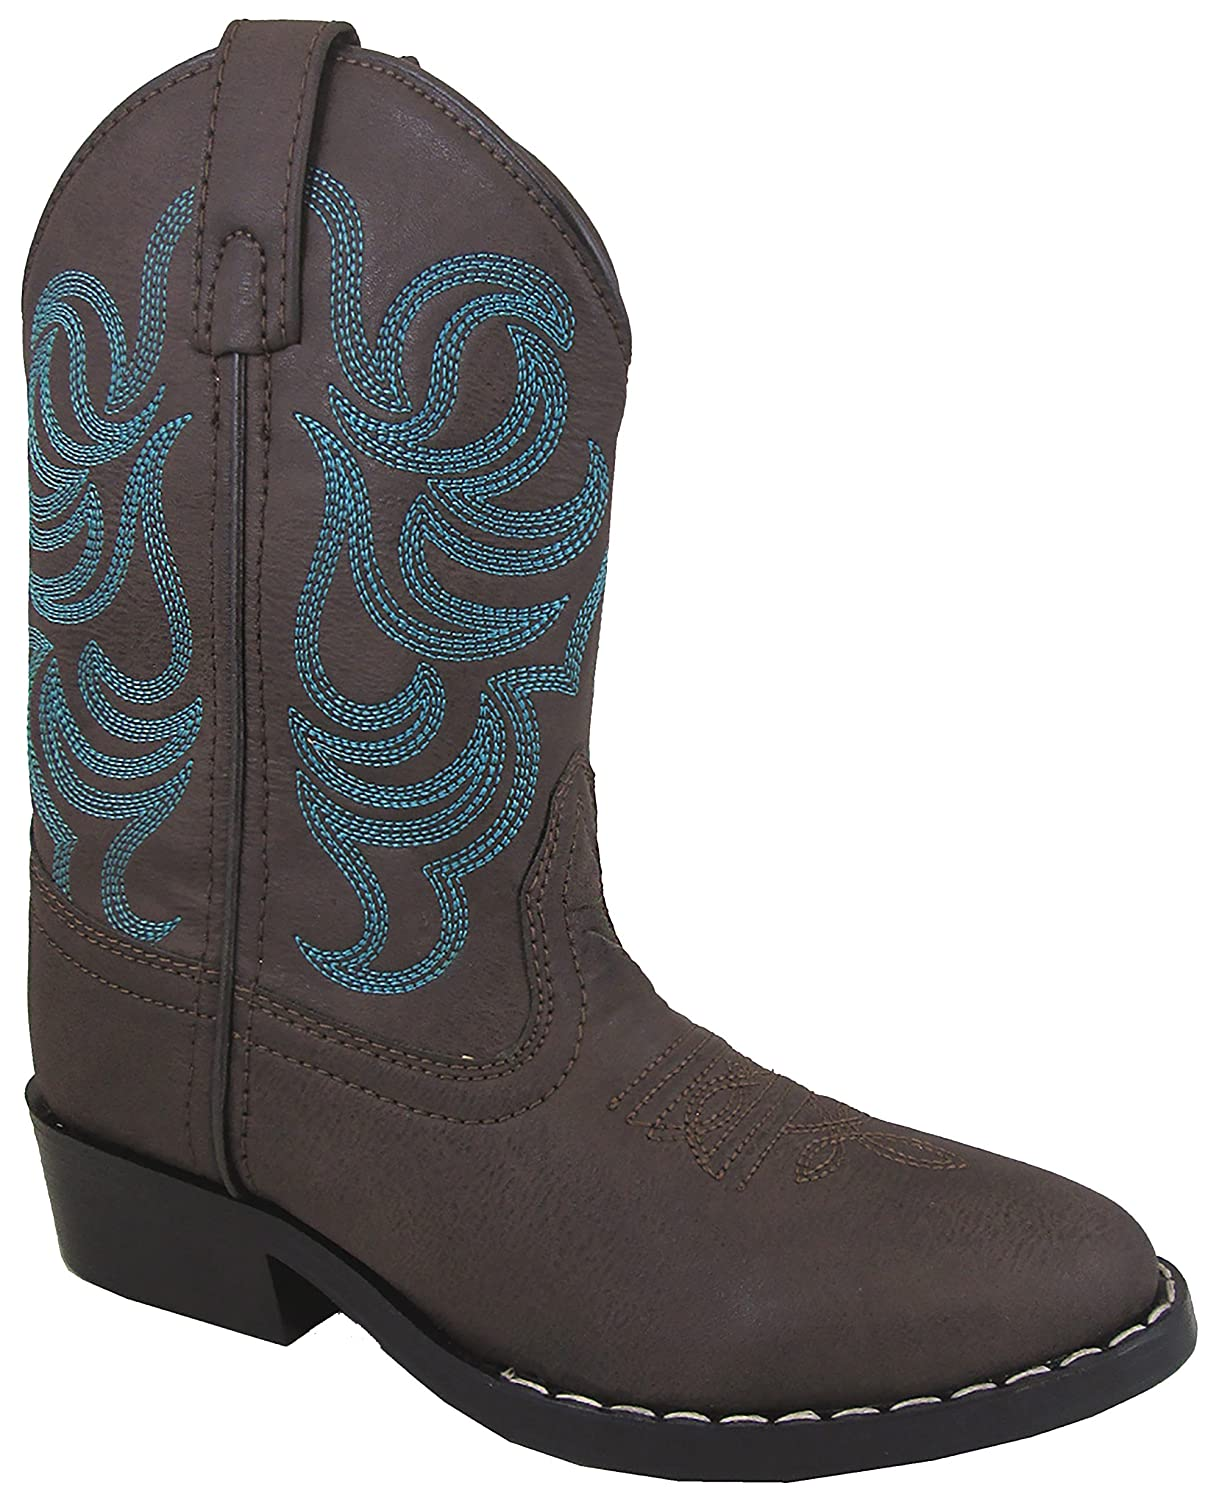 021ede2c217 Smoky Mountain Childrens Monterey Western Cowboy Boots